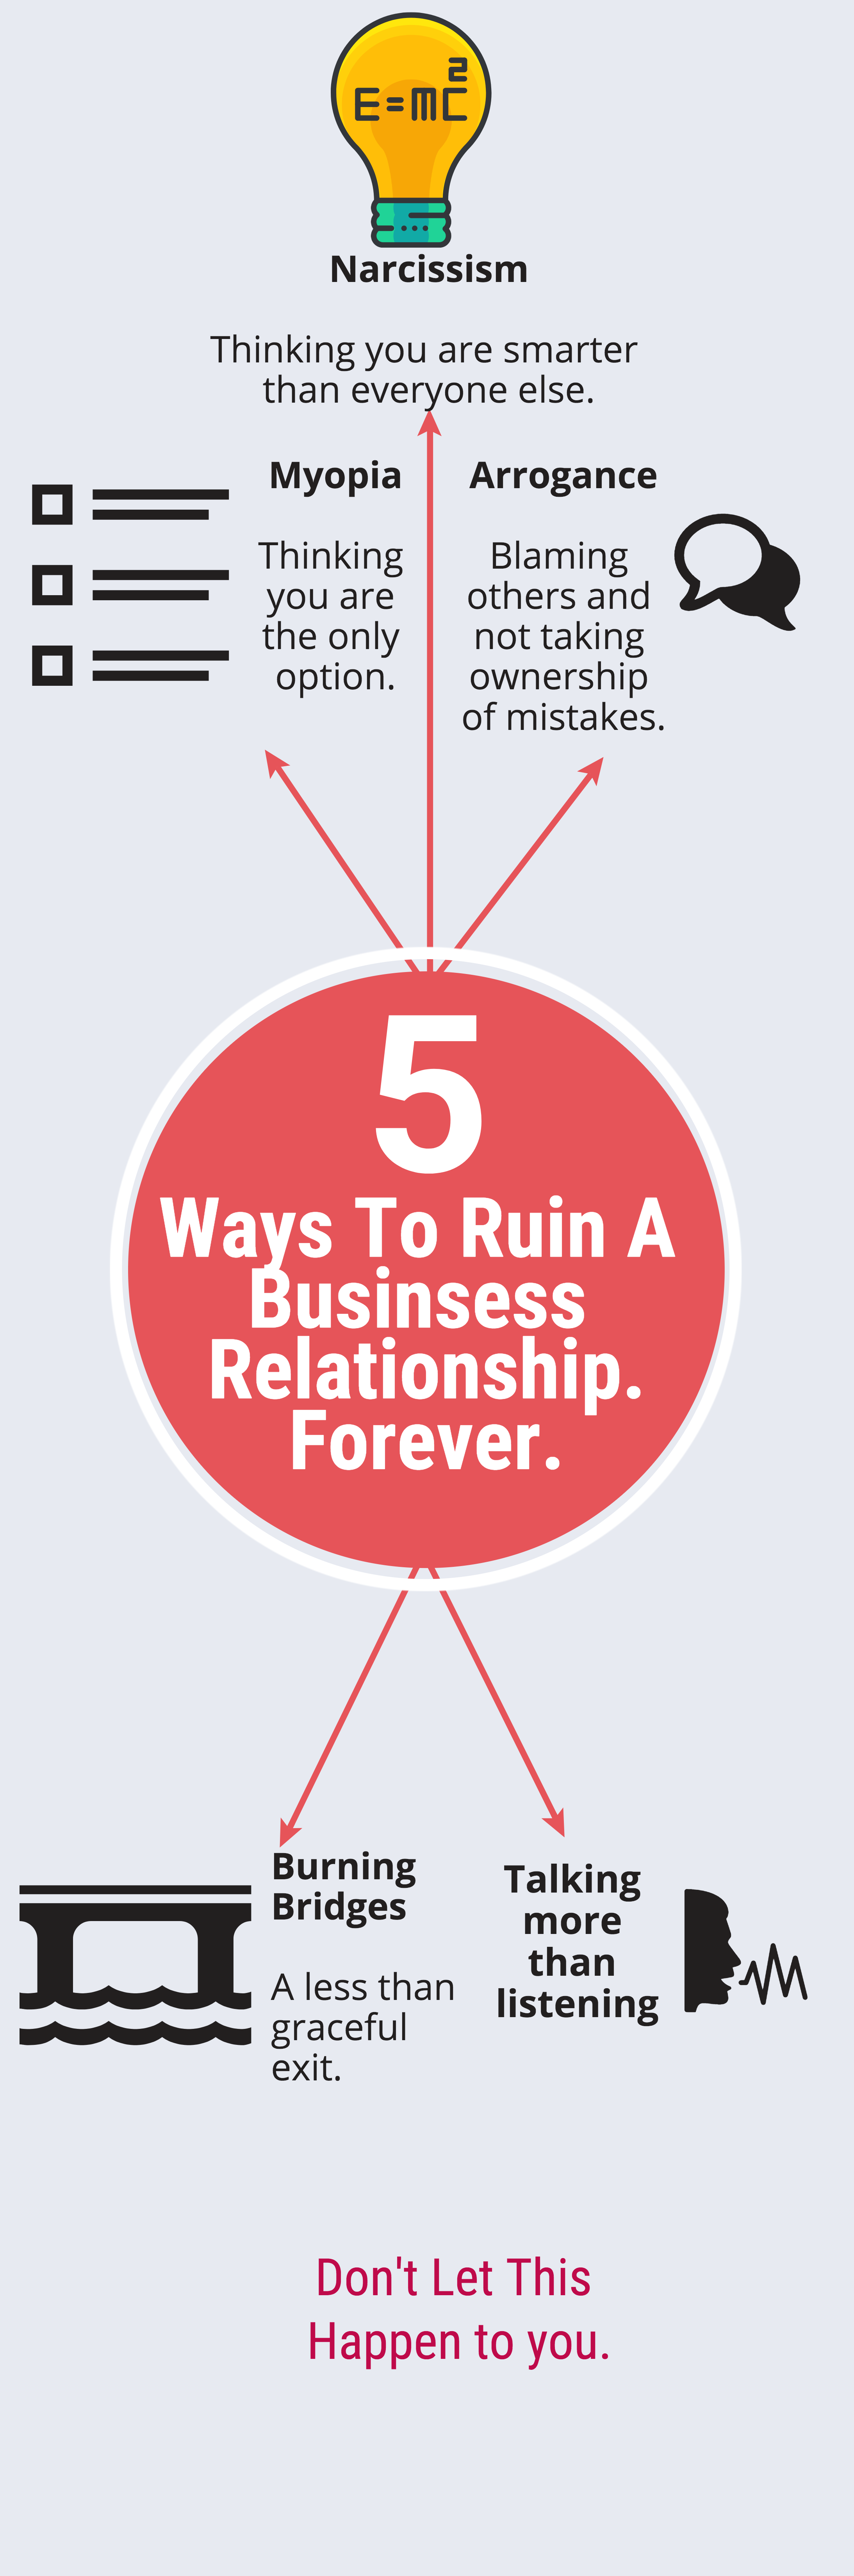 5 Ways To Ruin A Business Relationship. Forever.